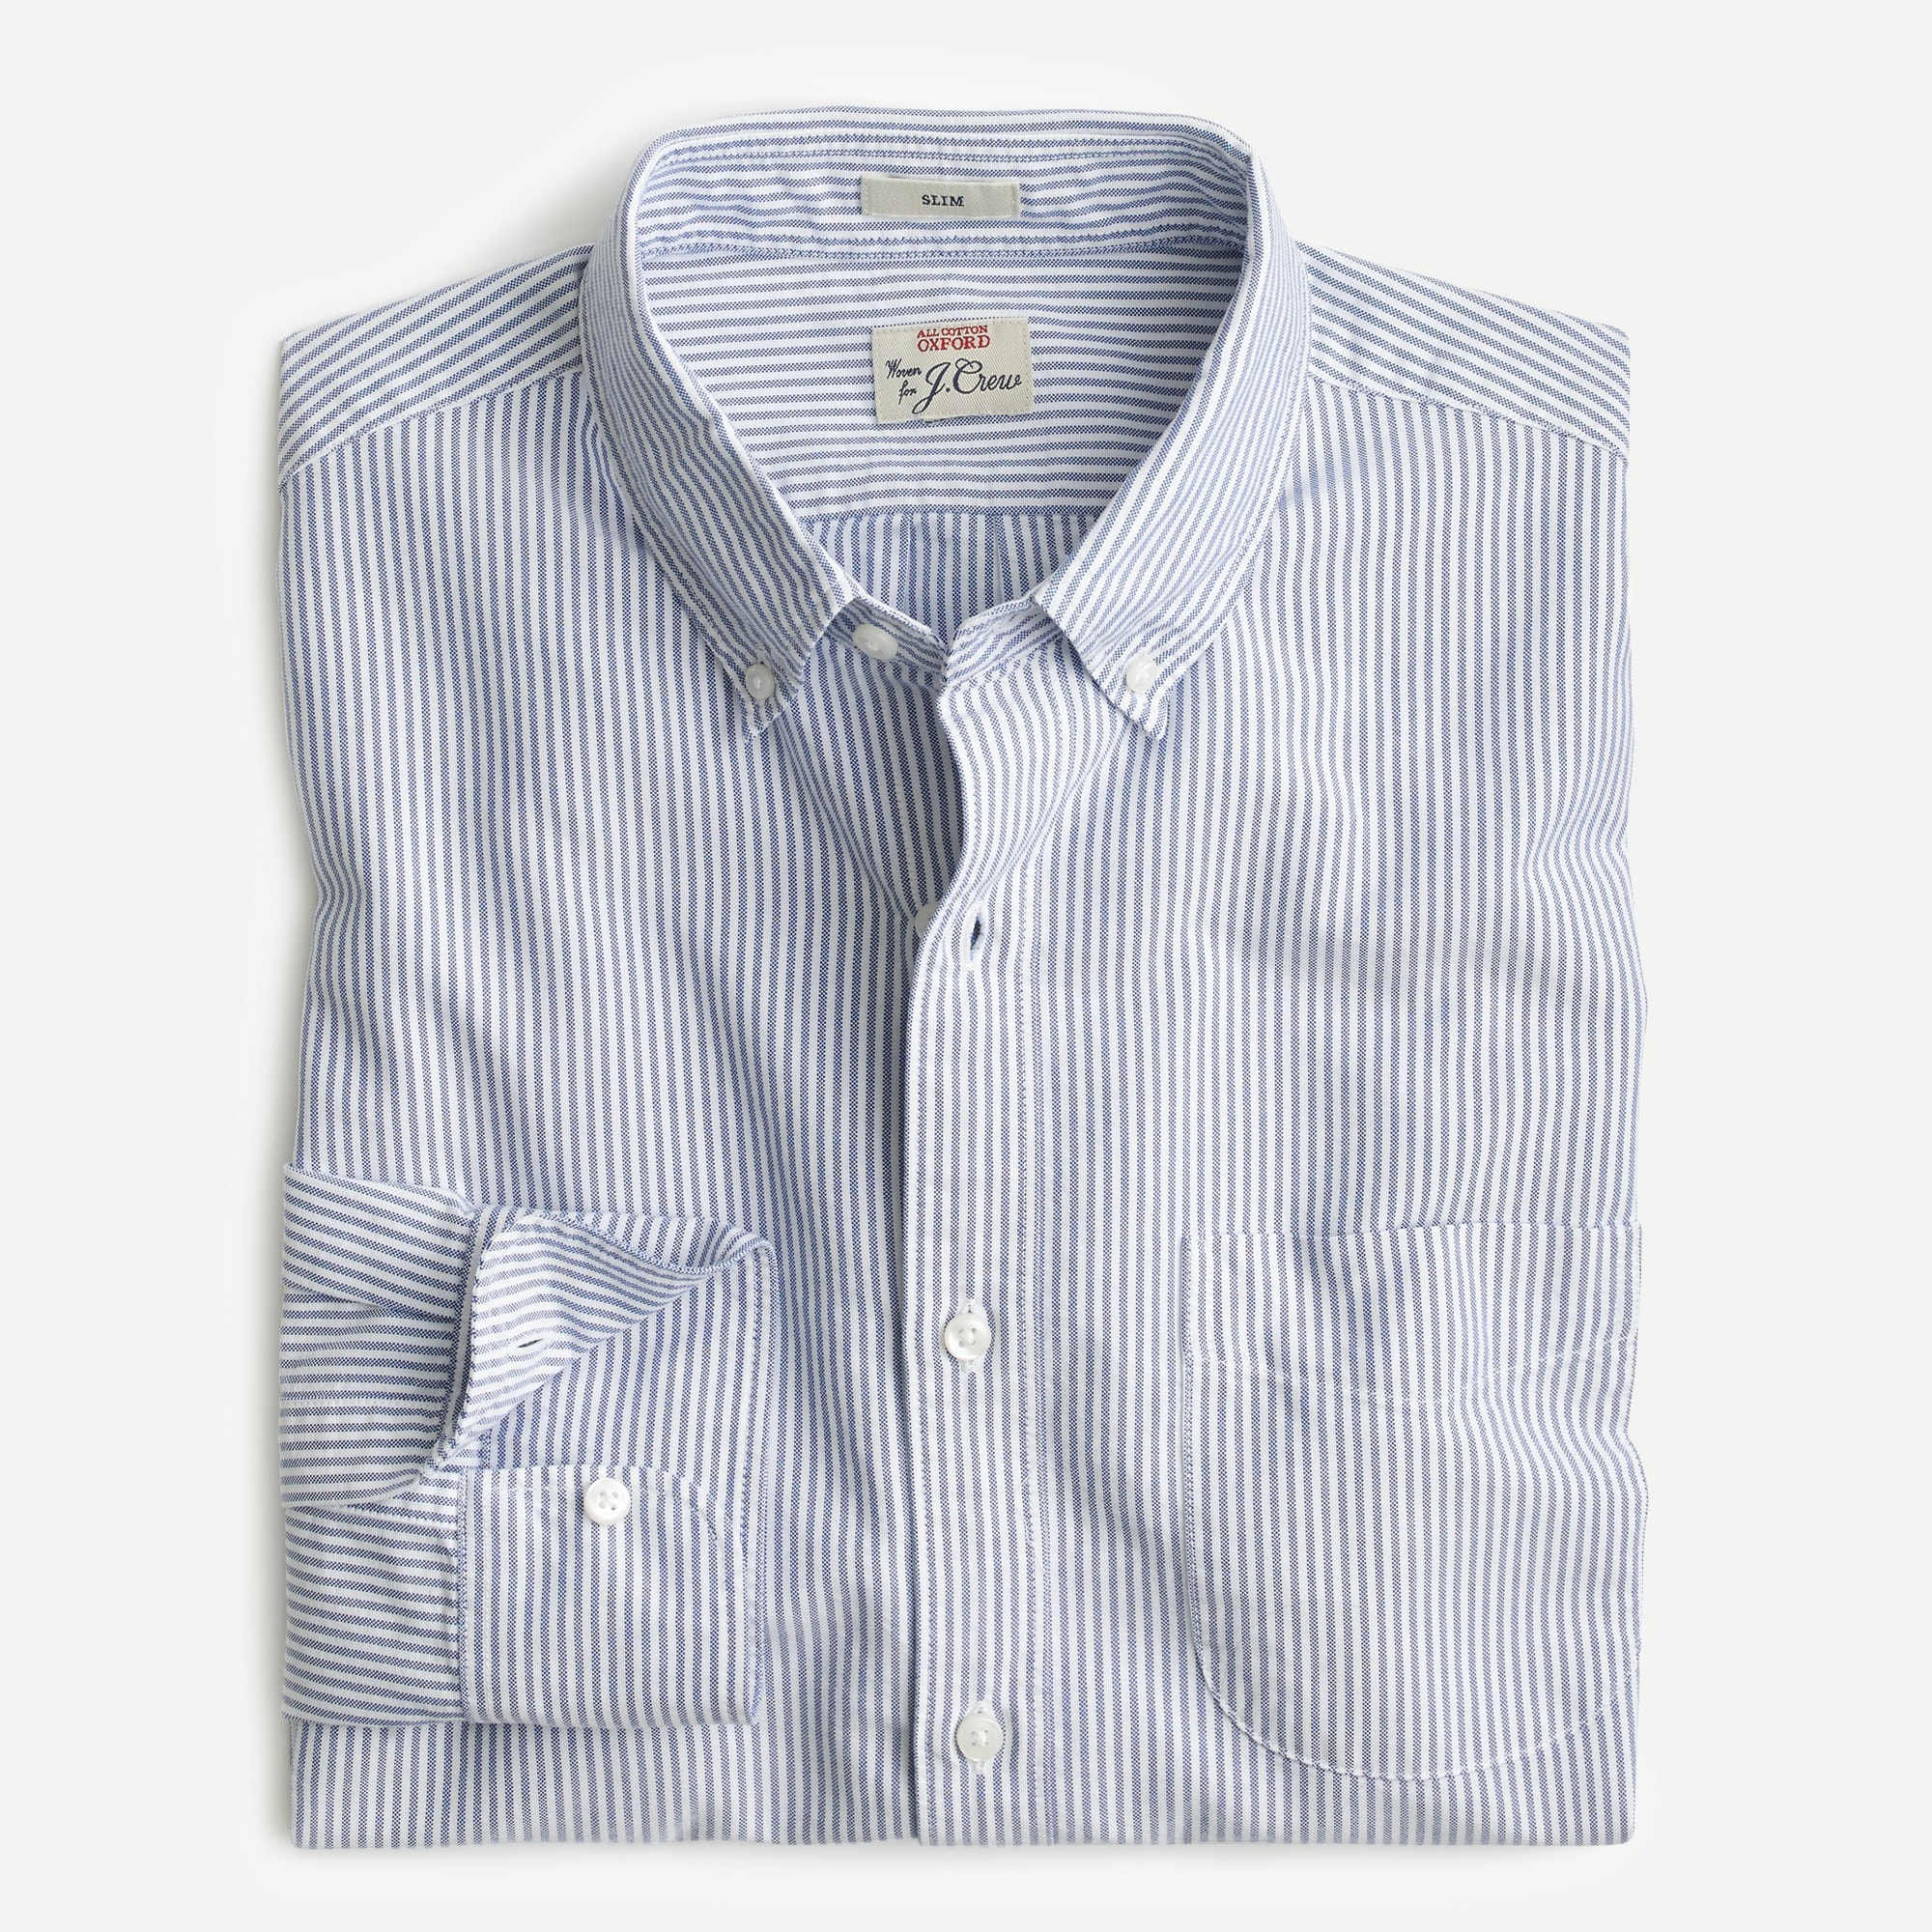 mens Untucked American Pima cotton striped oxford shirt with mechanical stretch